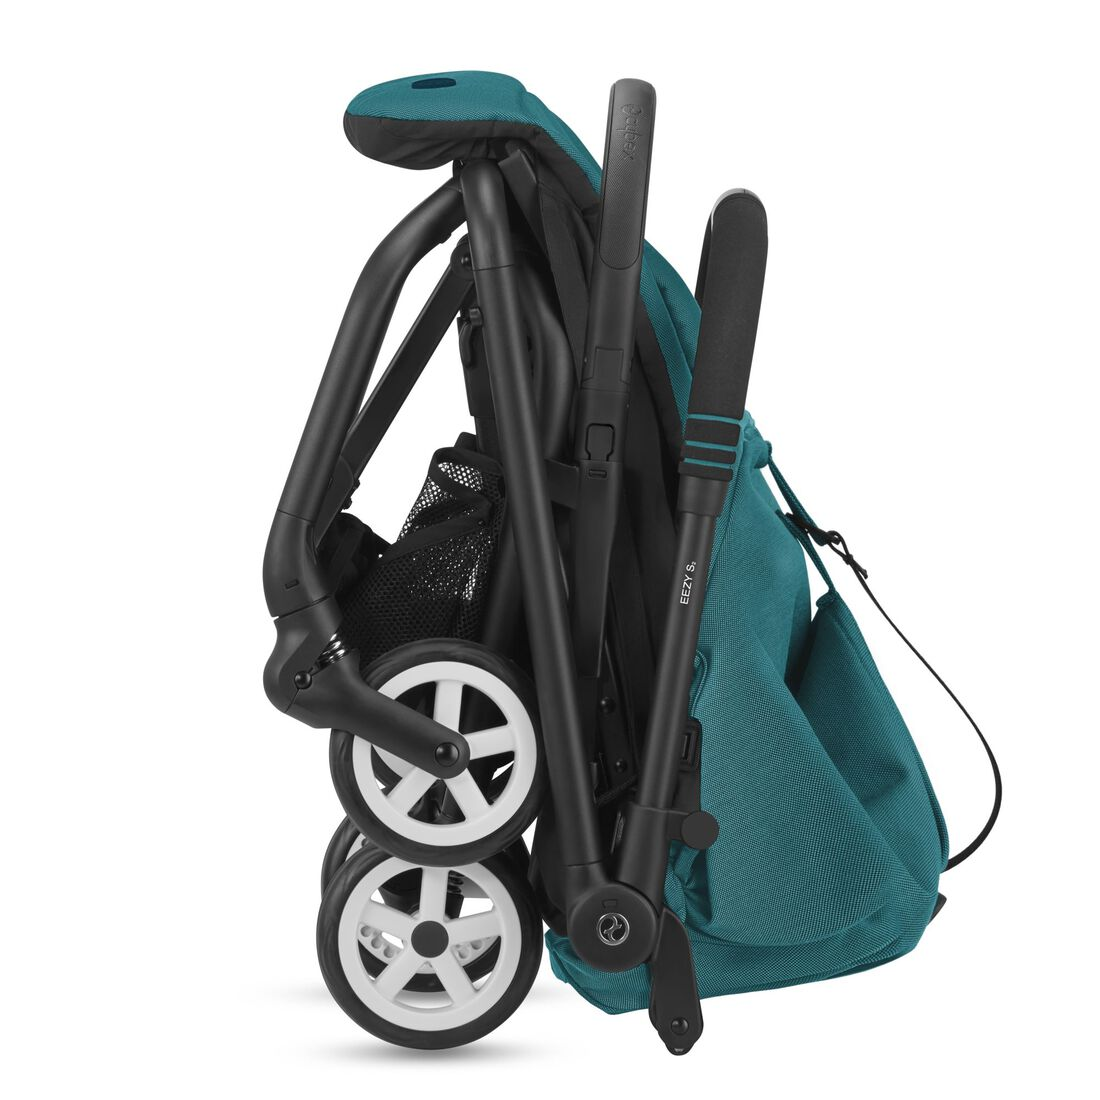 CYBEX Eezy S 2 - River Blue in River Blue large Bild 5